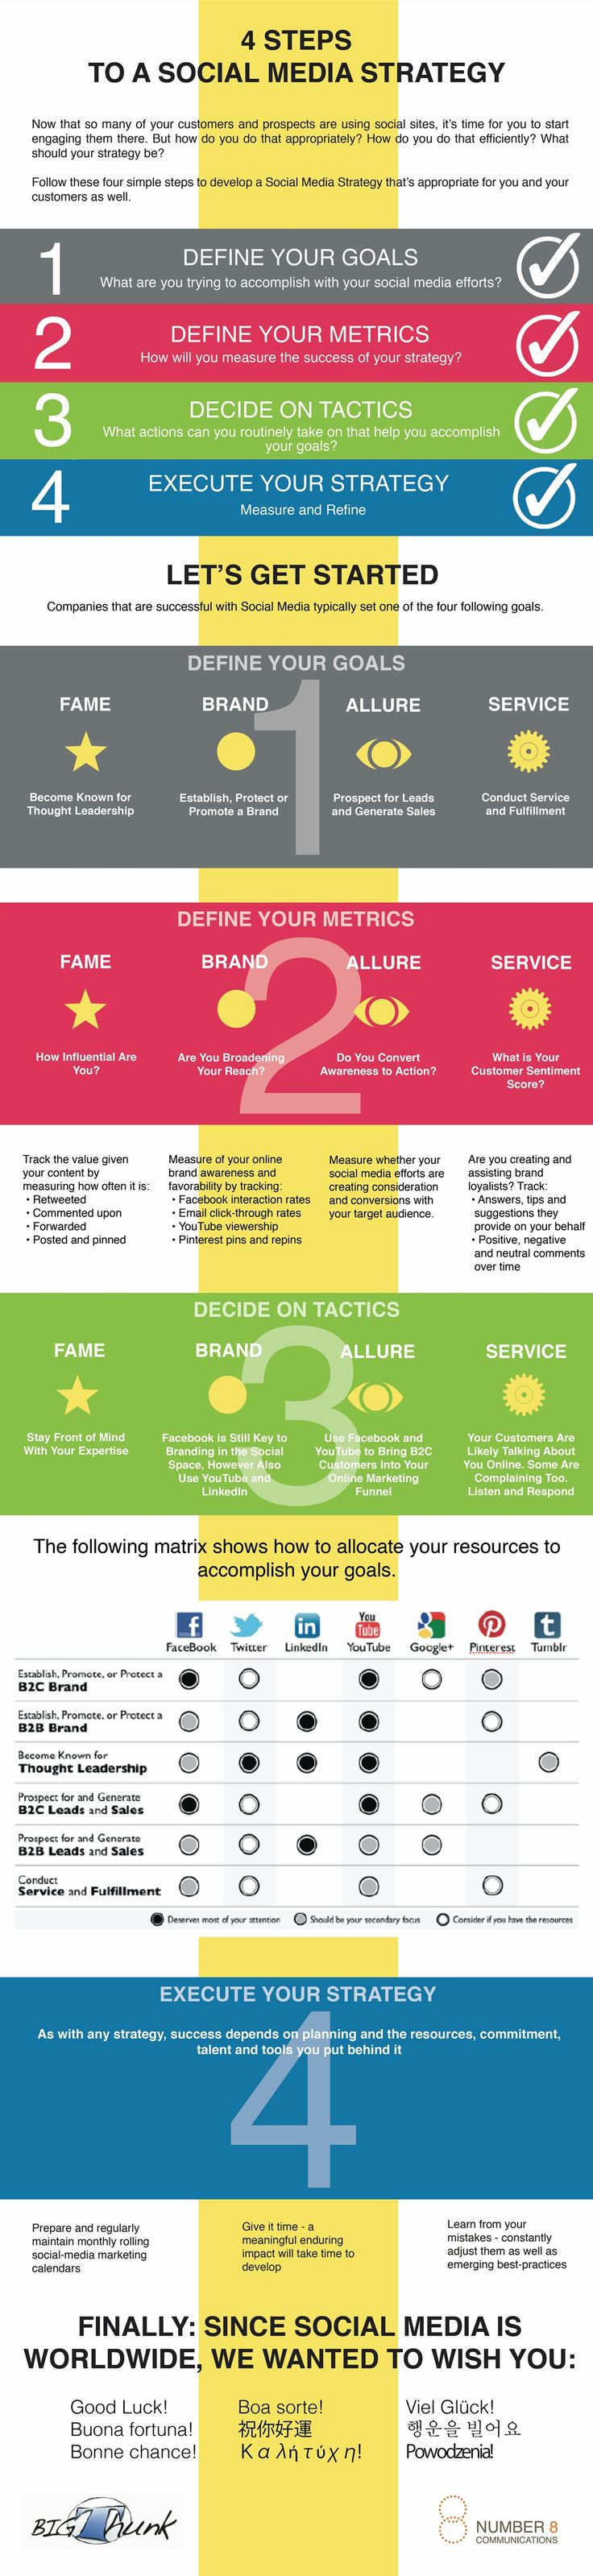 Great summary on creating a Social Media Strategy  (MarketingProfs Article).  For more ideas on startegy please see http://www.bramblebuzz,co.uk